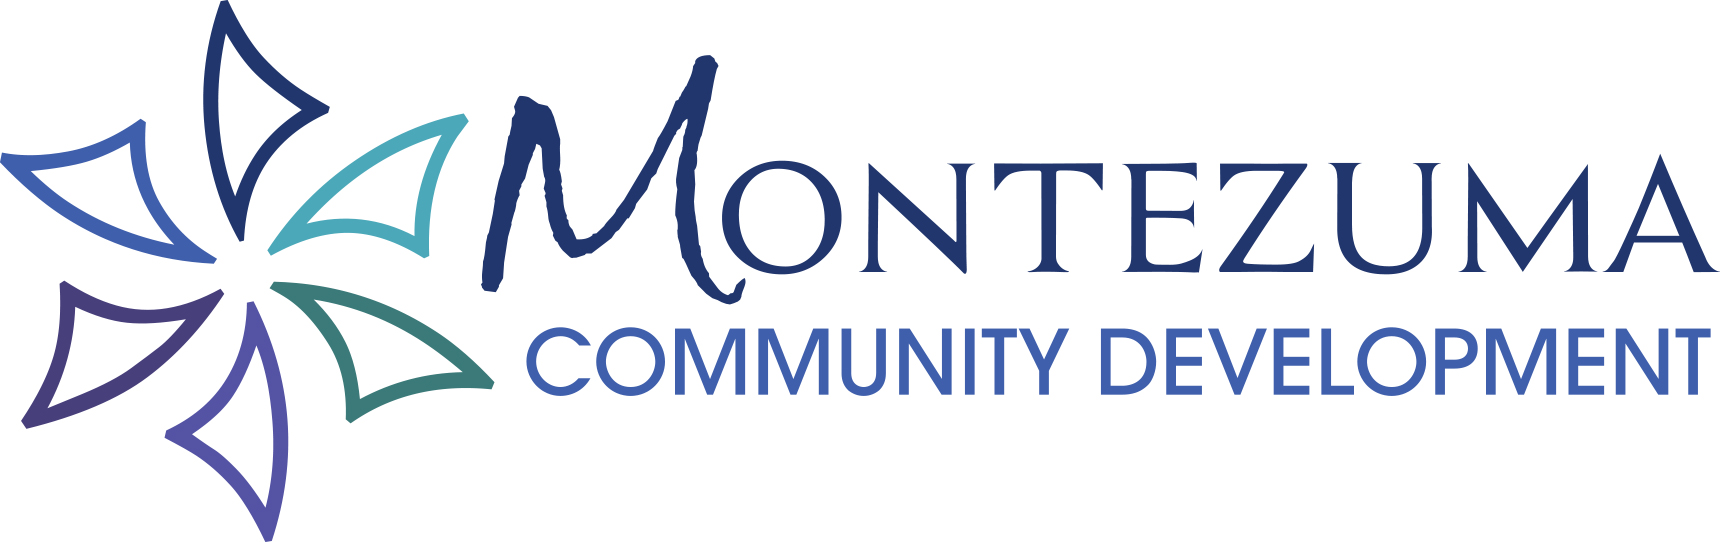 15-153-Montezuma-Community-Development-Logo-C